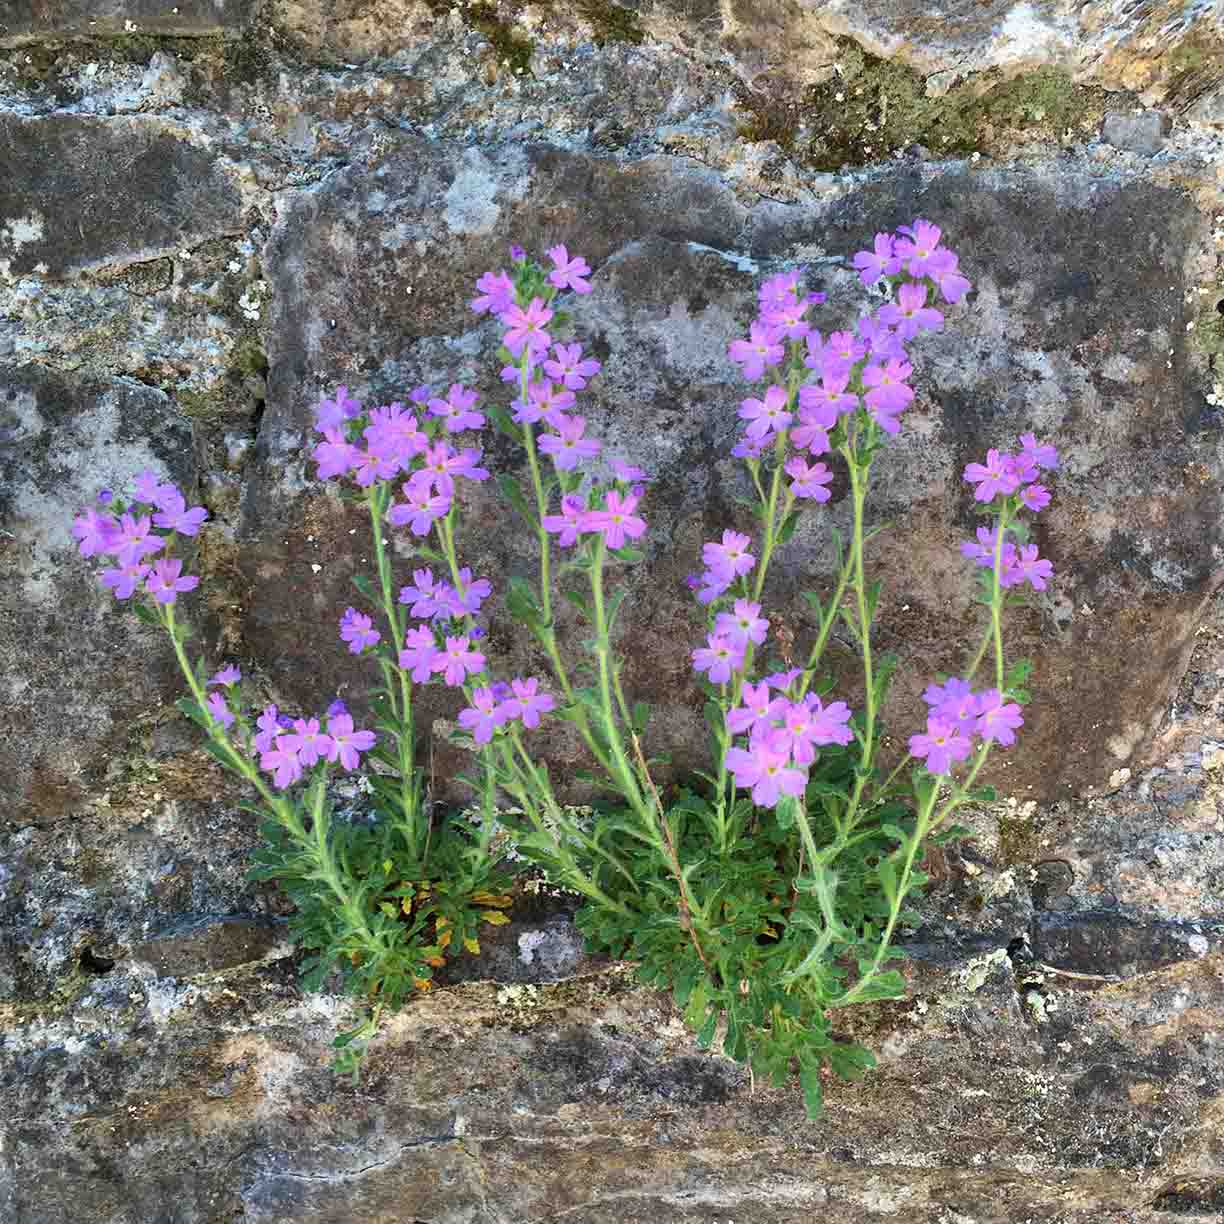 purple-flowers-in-concrete-bloom.jpg